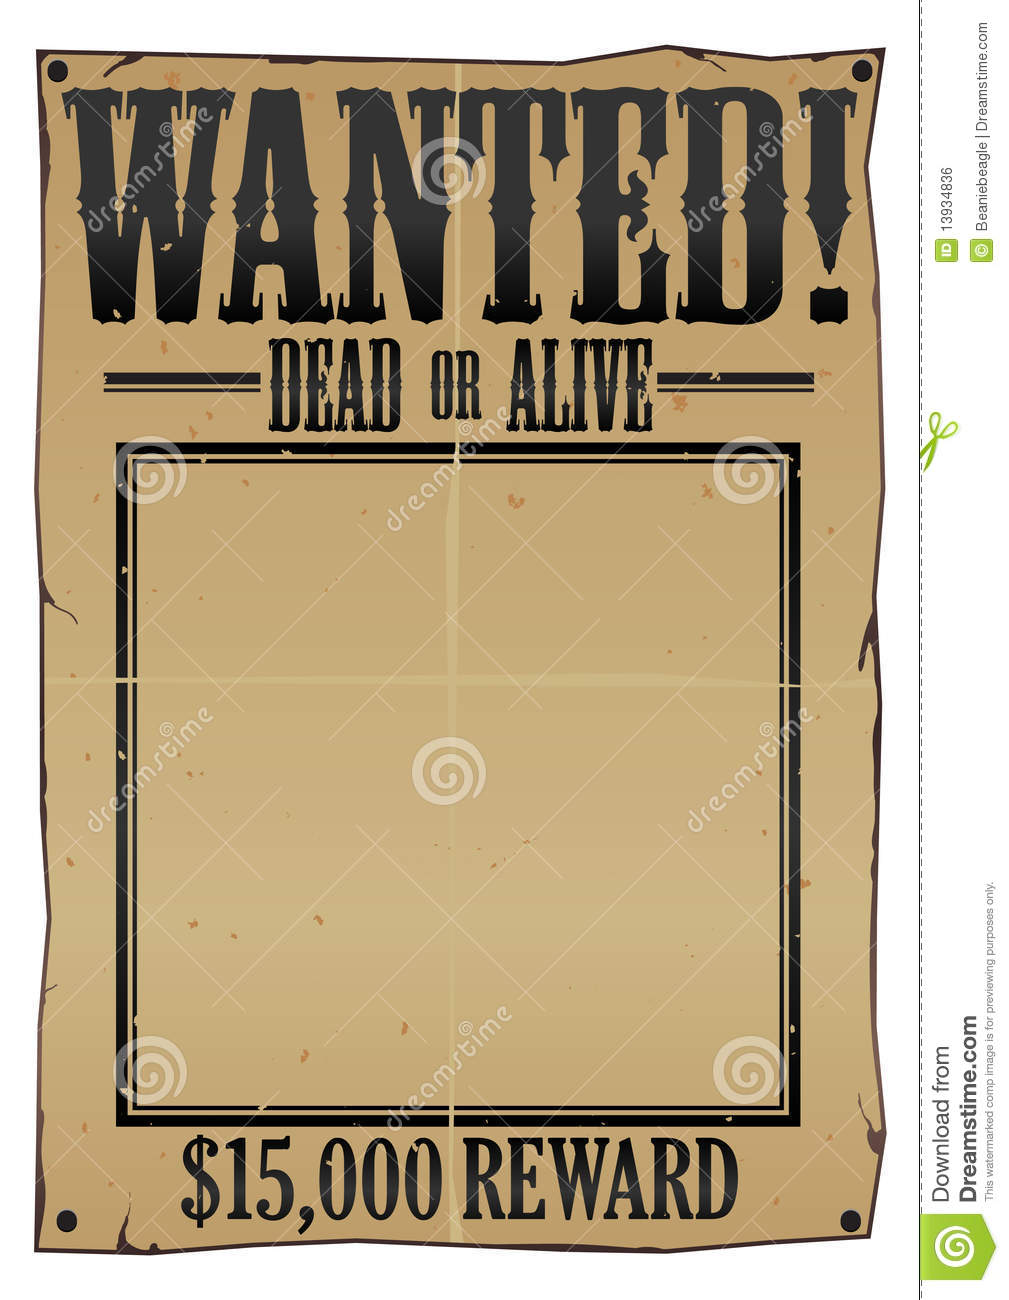 wanted poster format - Timiz.conceptzmusic.co